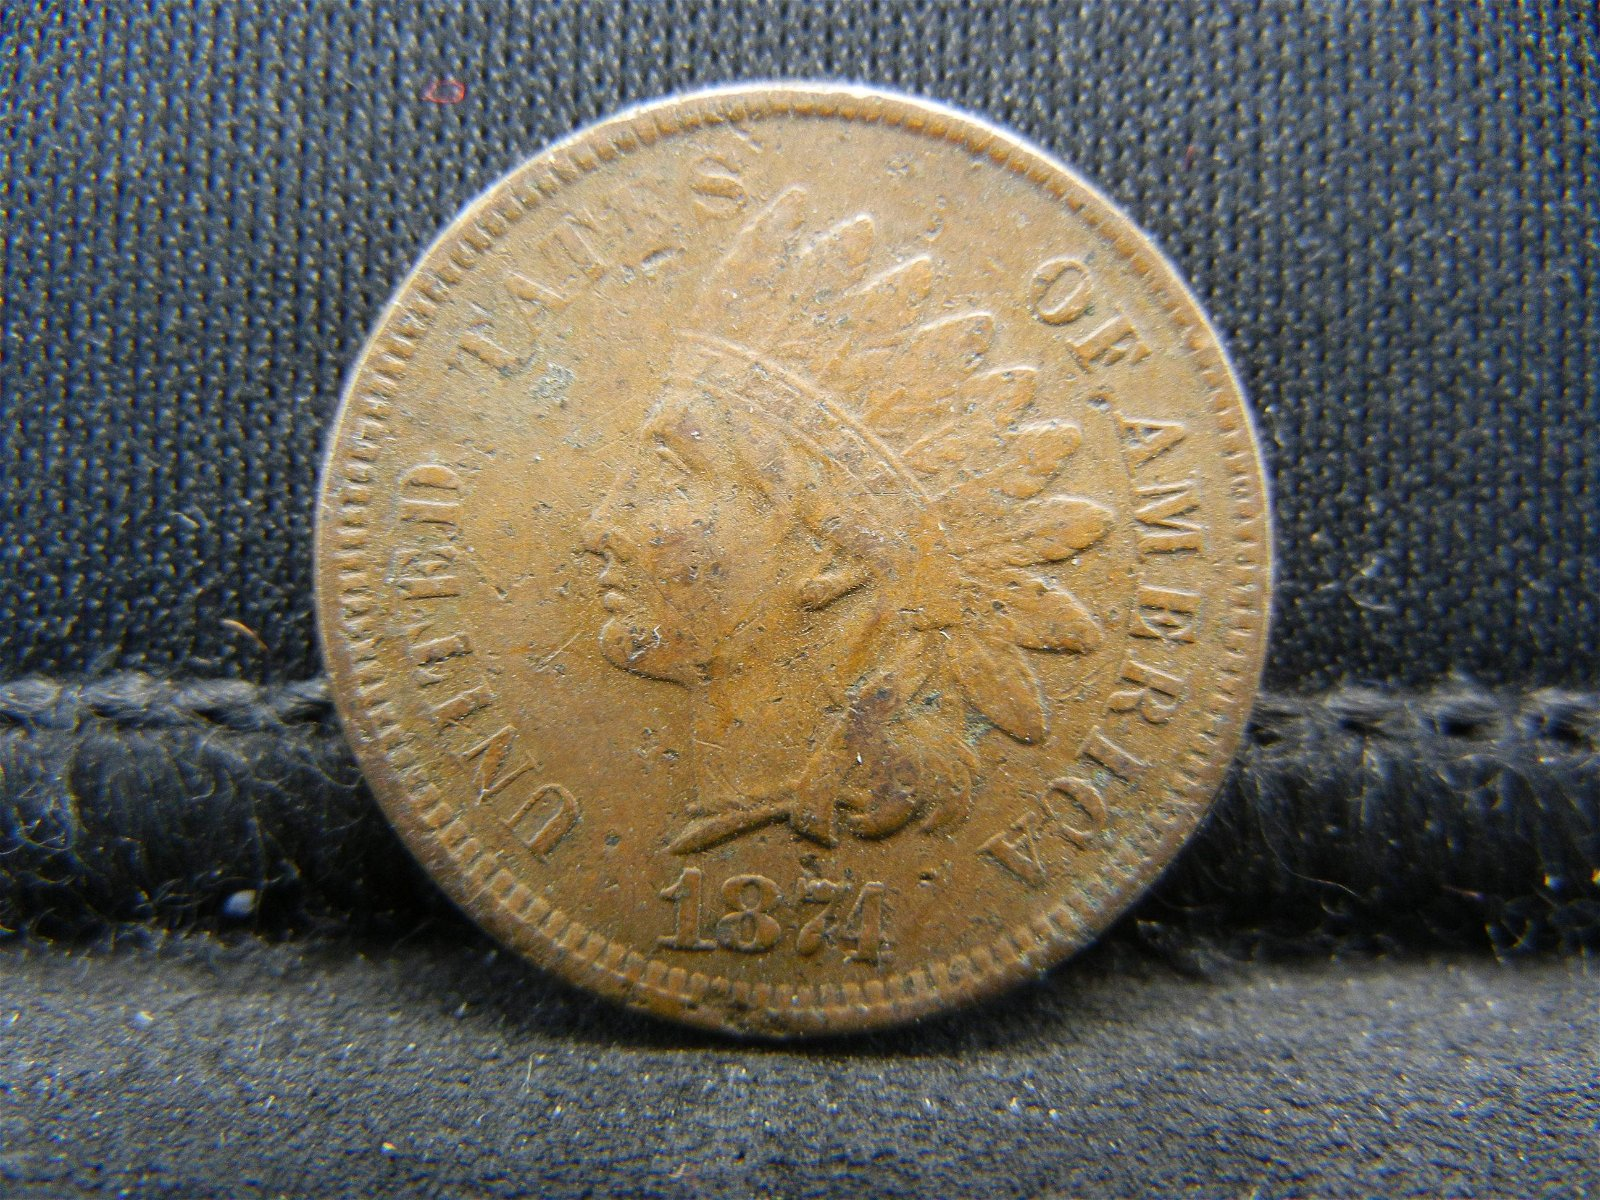 1874 United States Indian Head Penny Cent